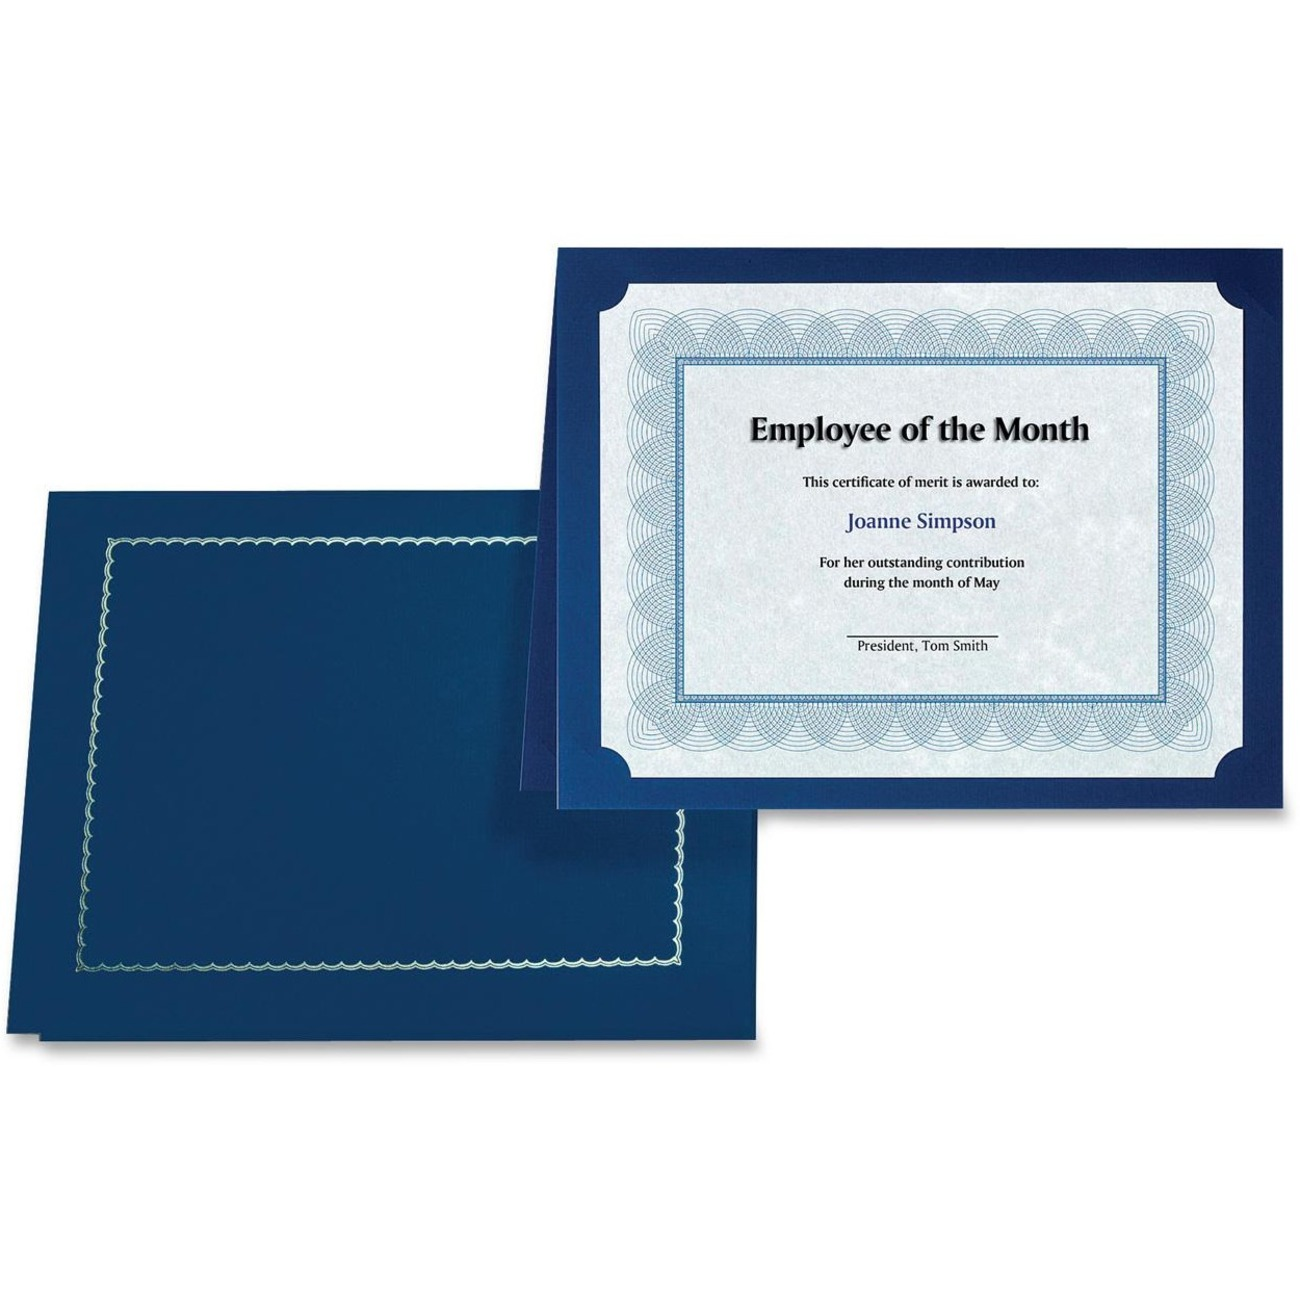 certificate holder gold staples navy base pack foil folio stamped a4 write sheet office paper company madill reviewsnapshot letter